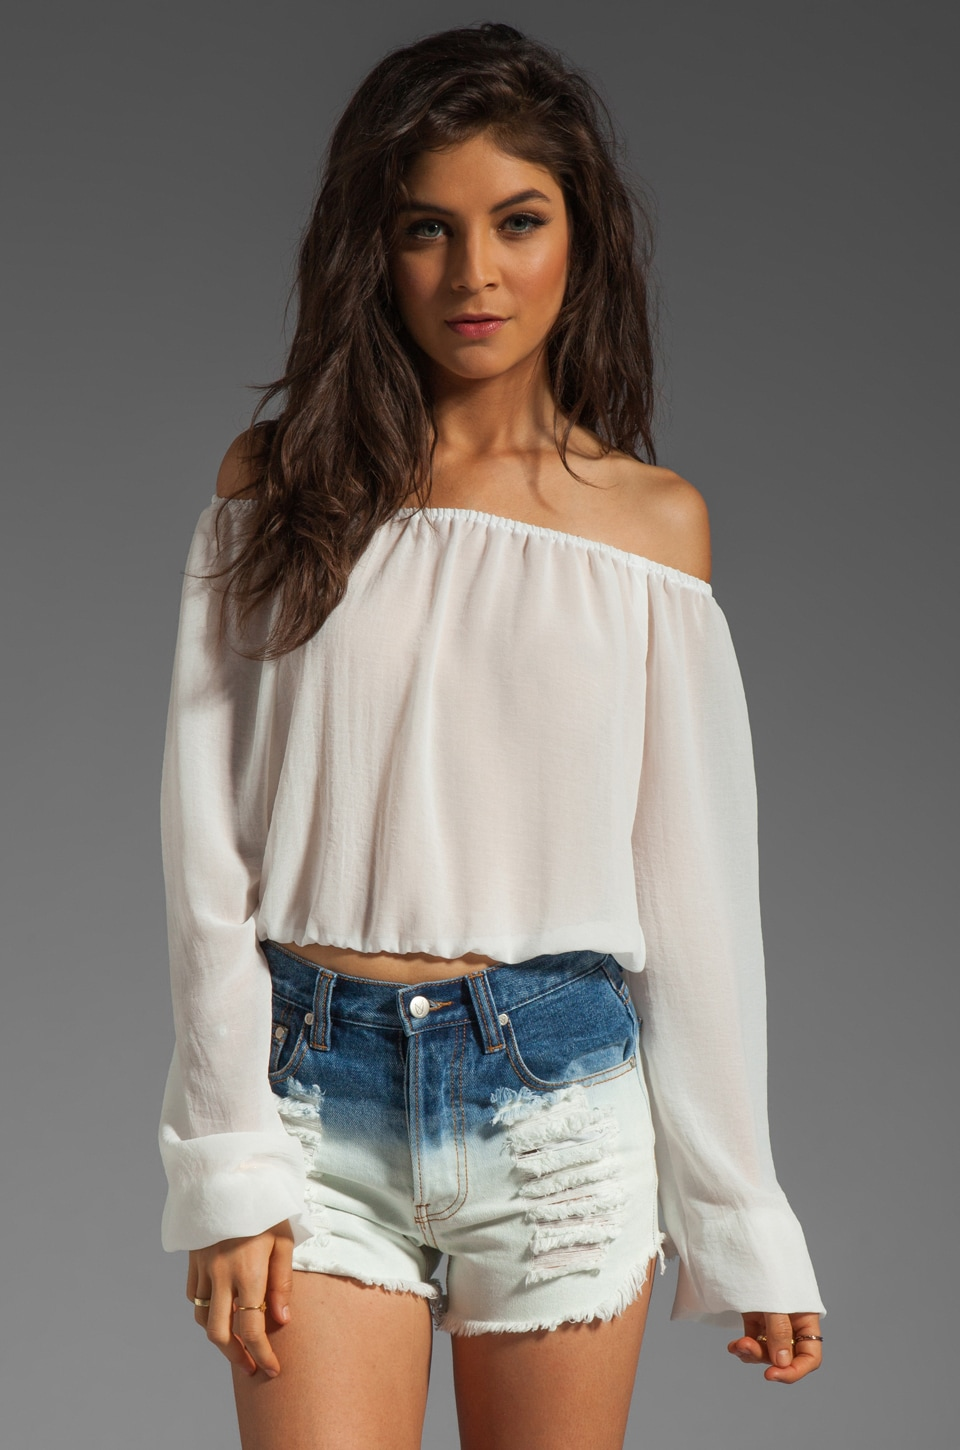 Show Me Your Mumu Lima Scrunch Top in Snow White Chiffon